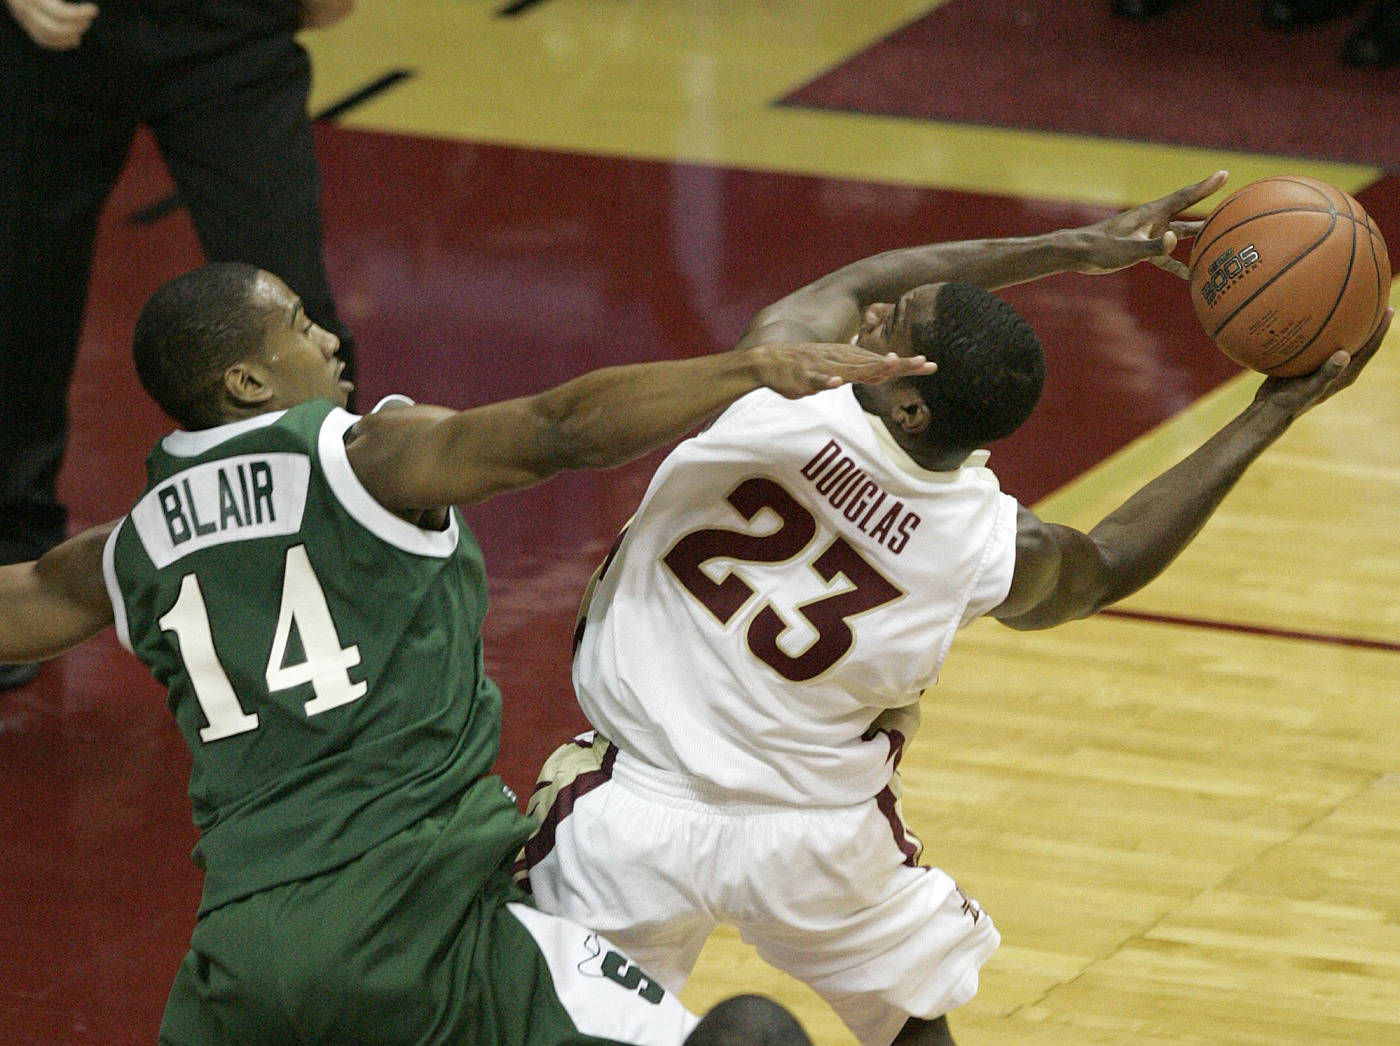 Florida State's Toney Douglas, right, is fouled by Stetson's Garfield Blair as he drives to the basket in the first half of a college basketball game on Friday Nov. 30, 2007 in Tallahassee, Fla. (AP Photo/Steve Cannon)